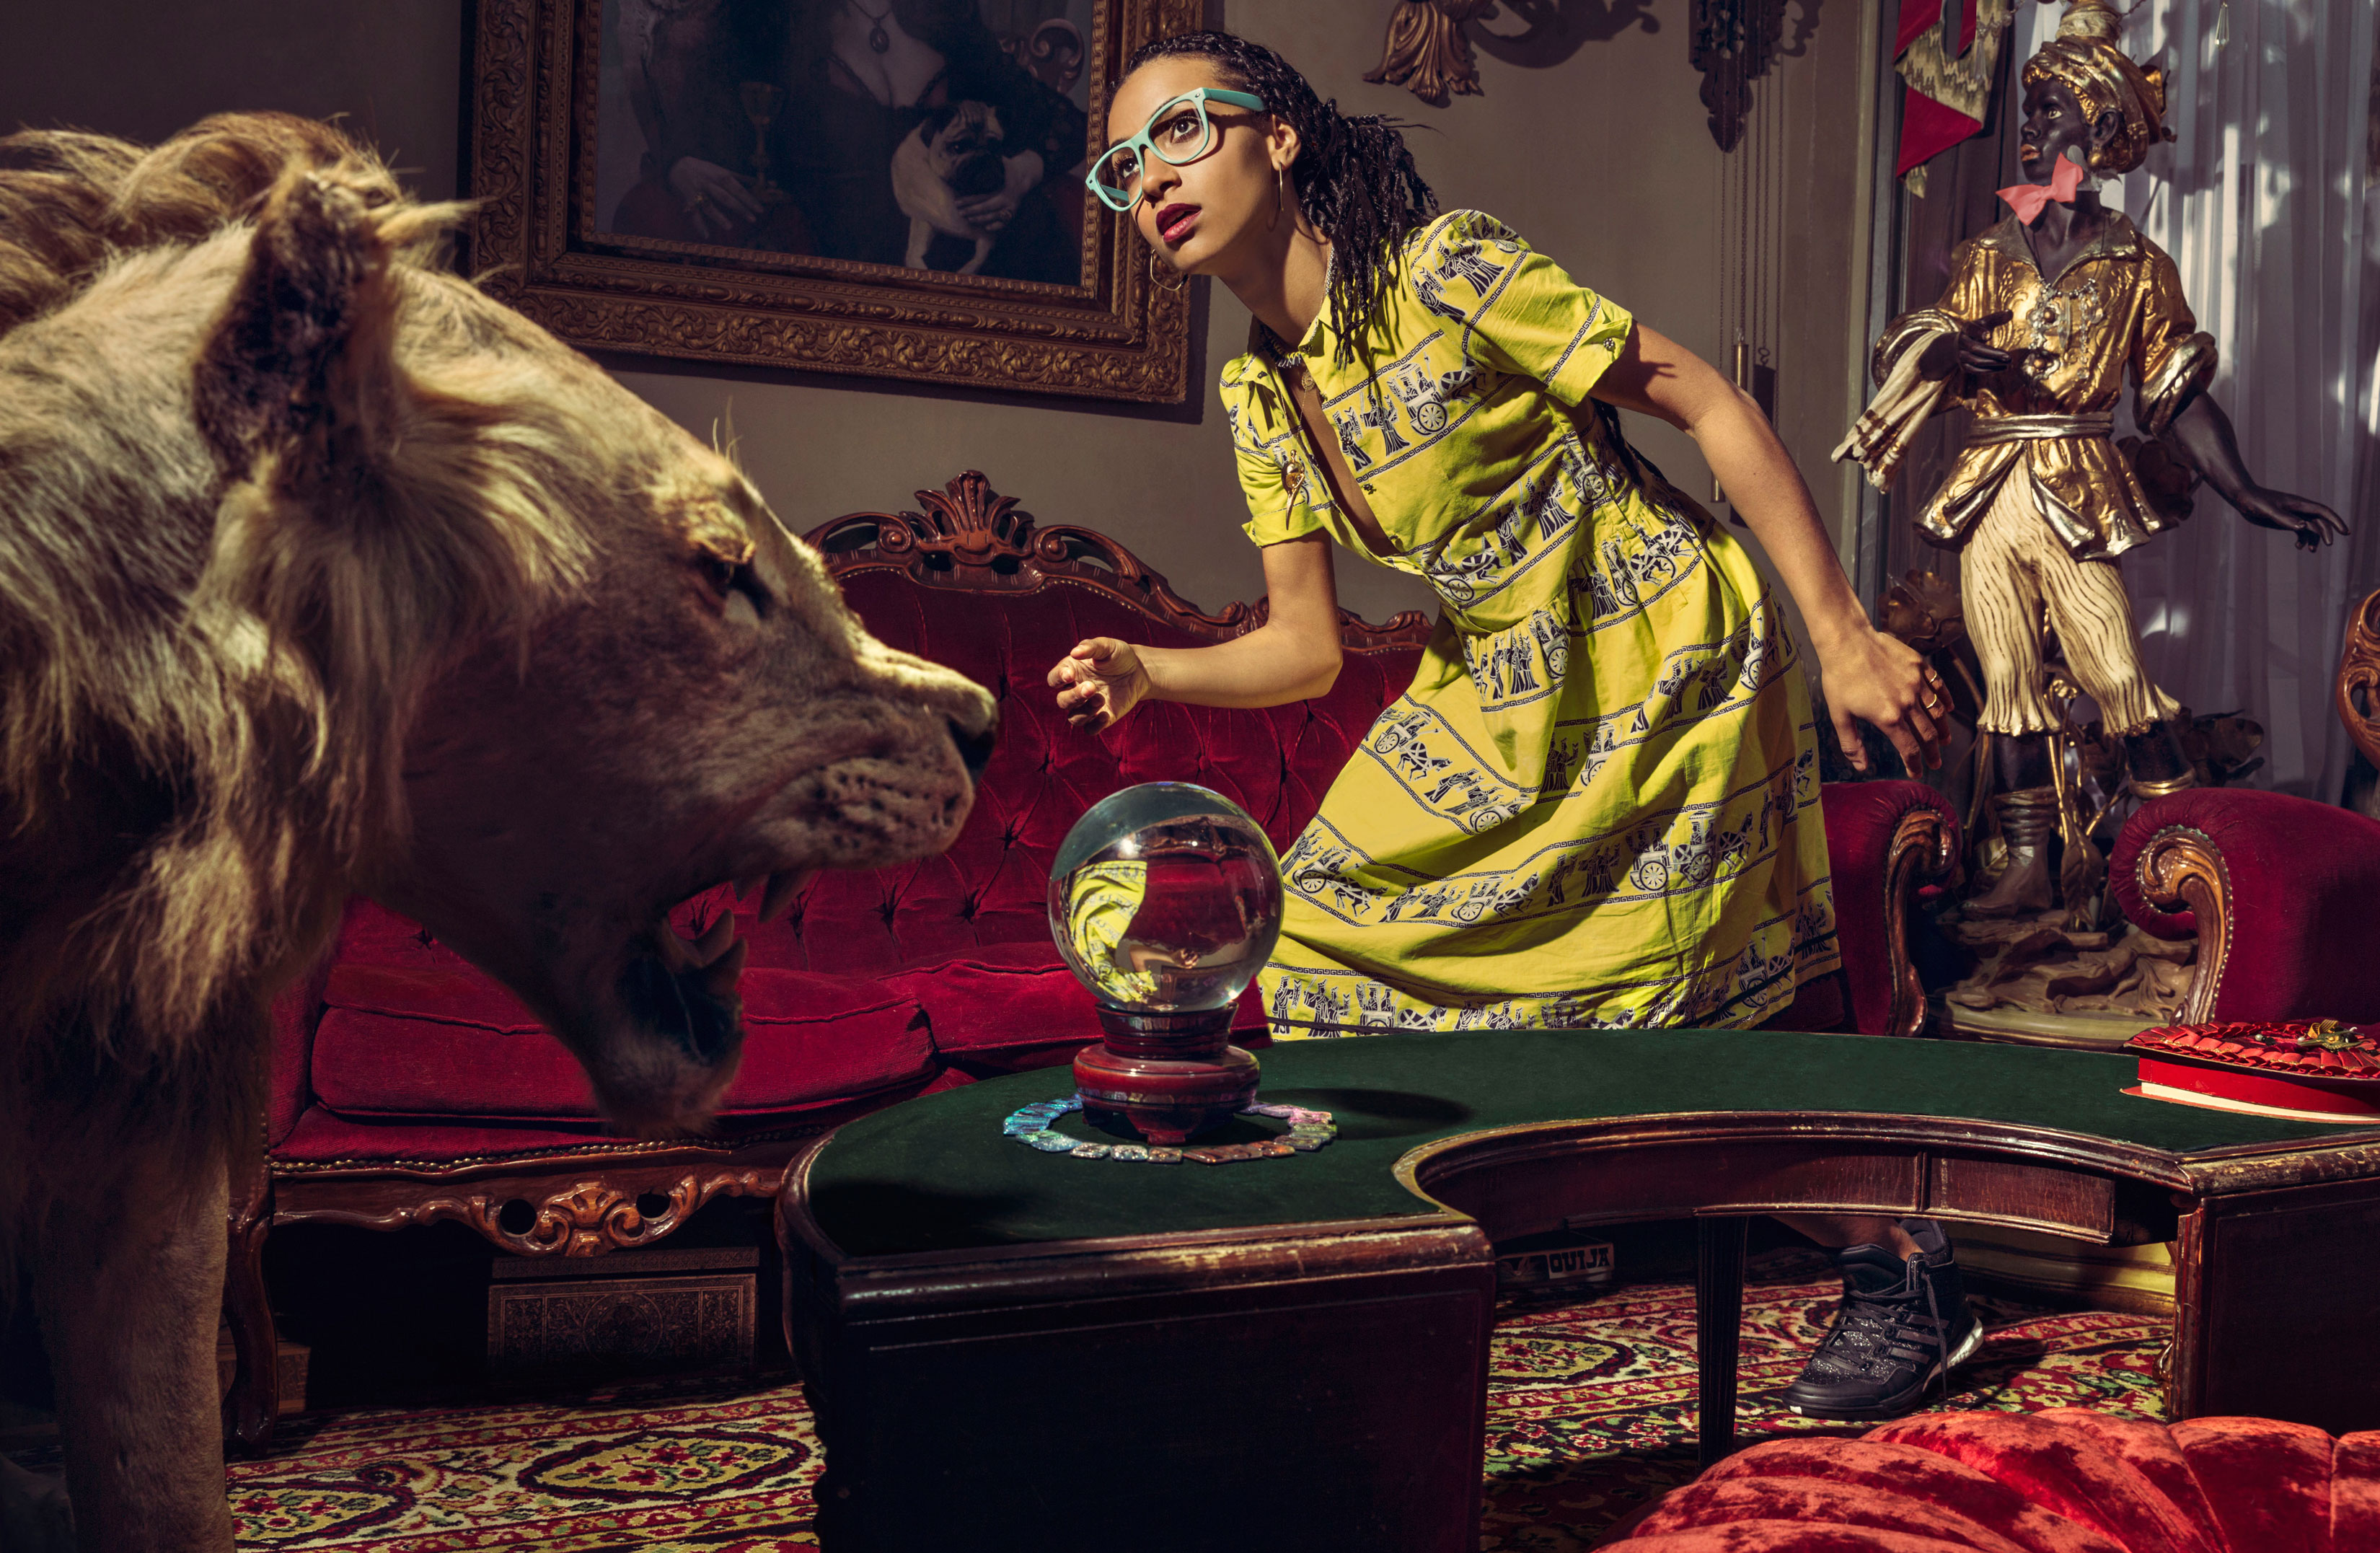 Talking music and bravery with jazz great Esperanza Spalding